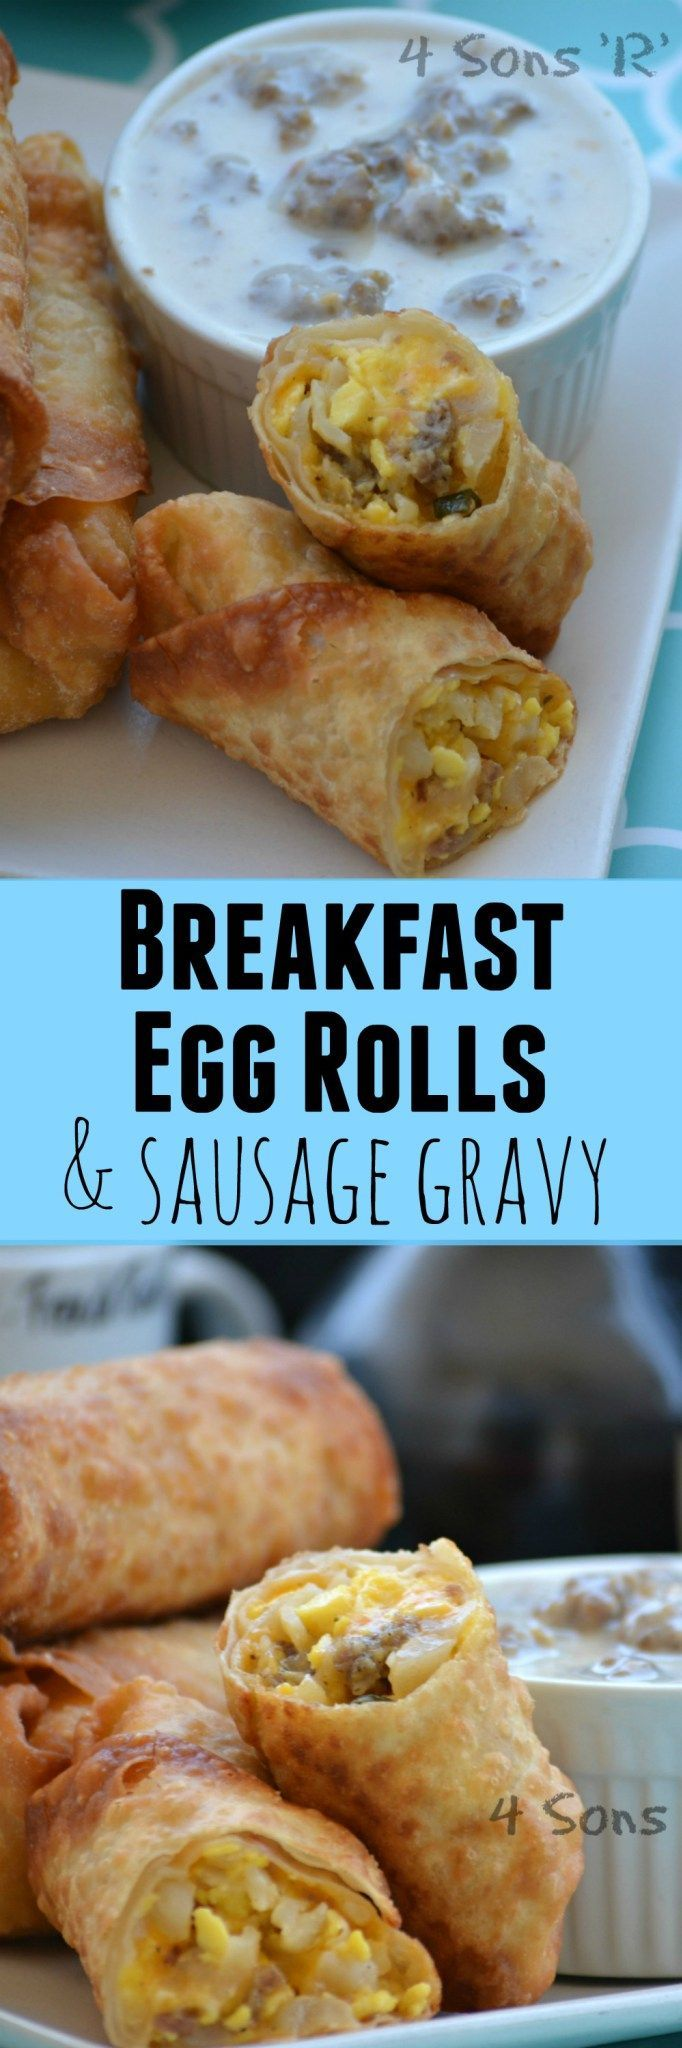 breakfast-egg-rolls-sausage-gravy-pin http://campingtentlovers.com/how-to-heat-a-camping-tent/